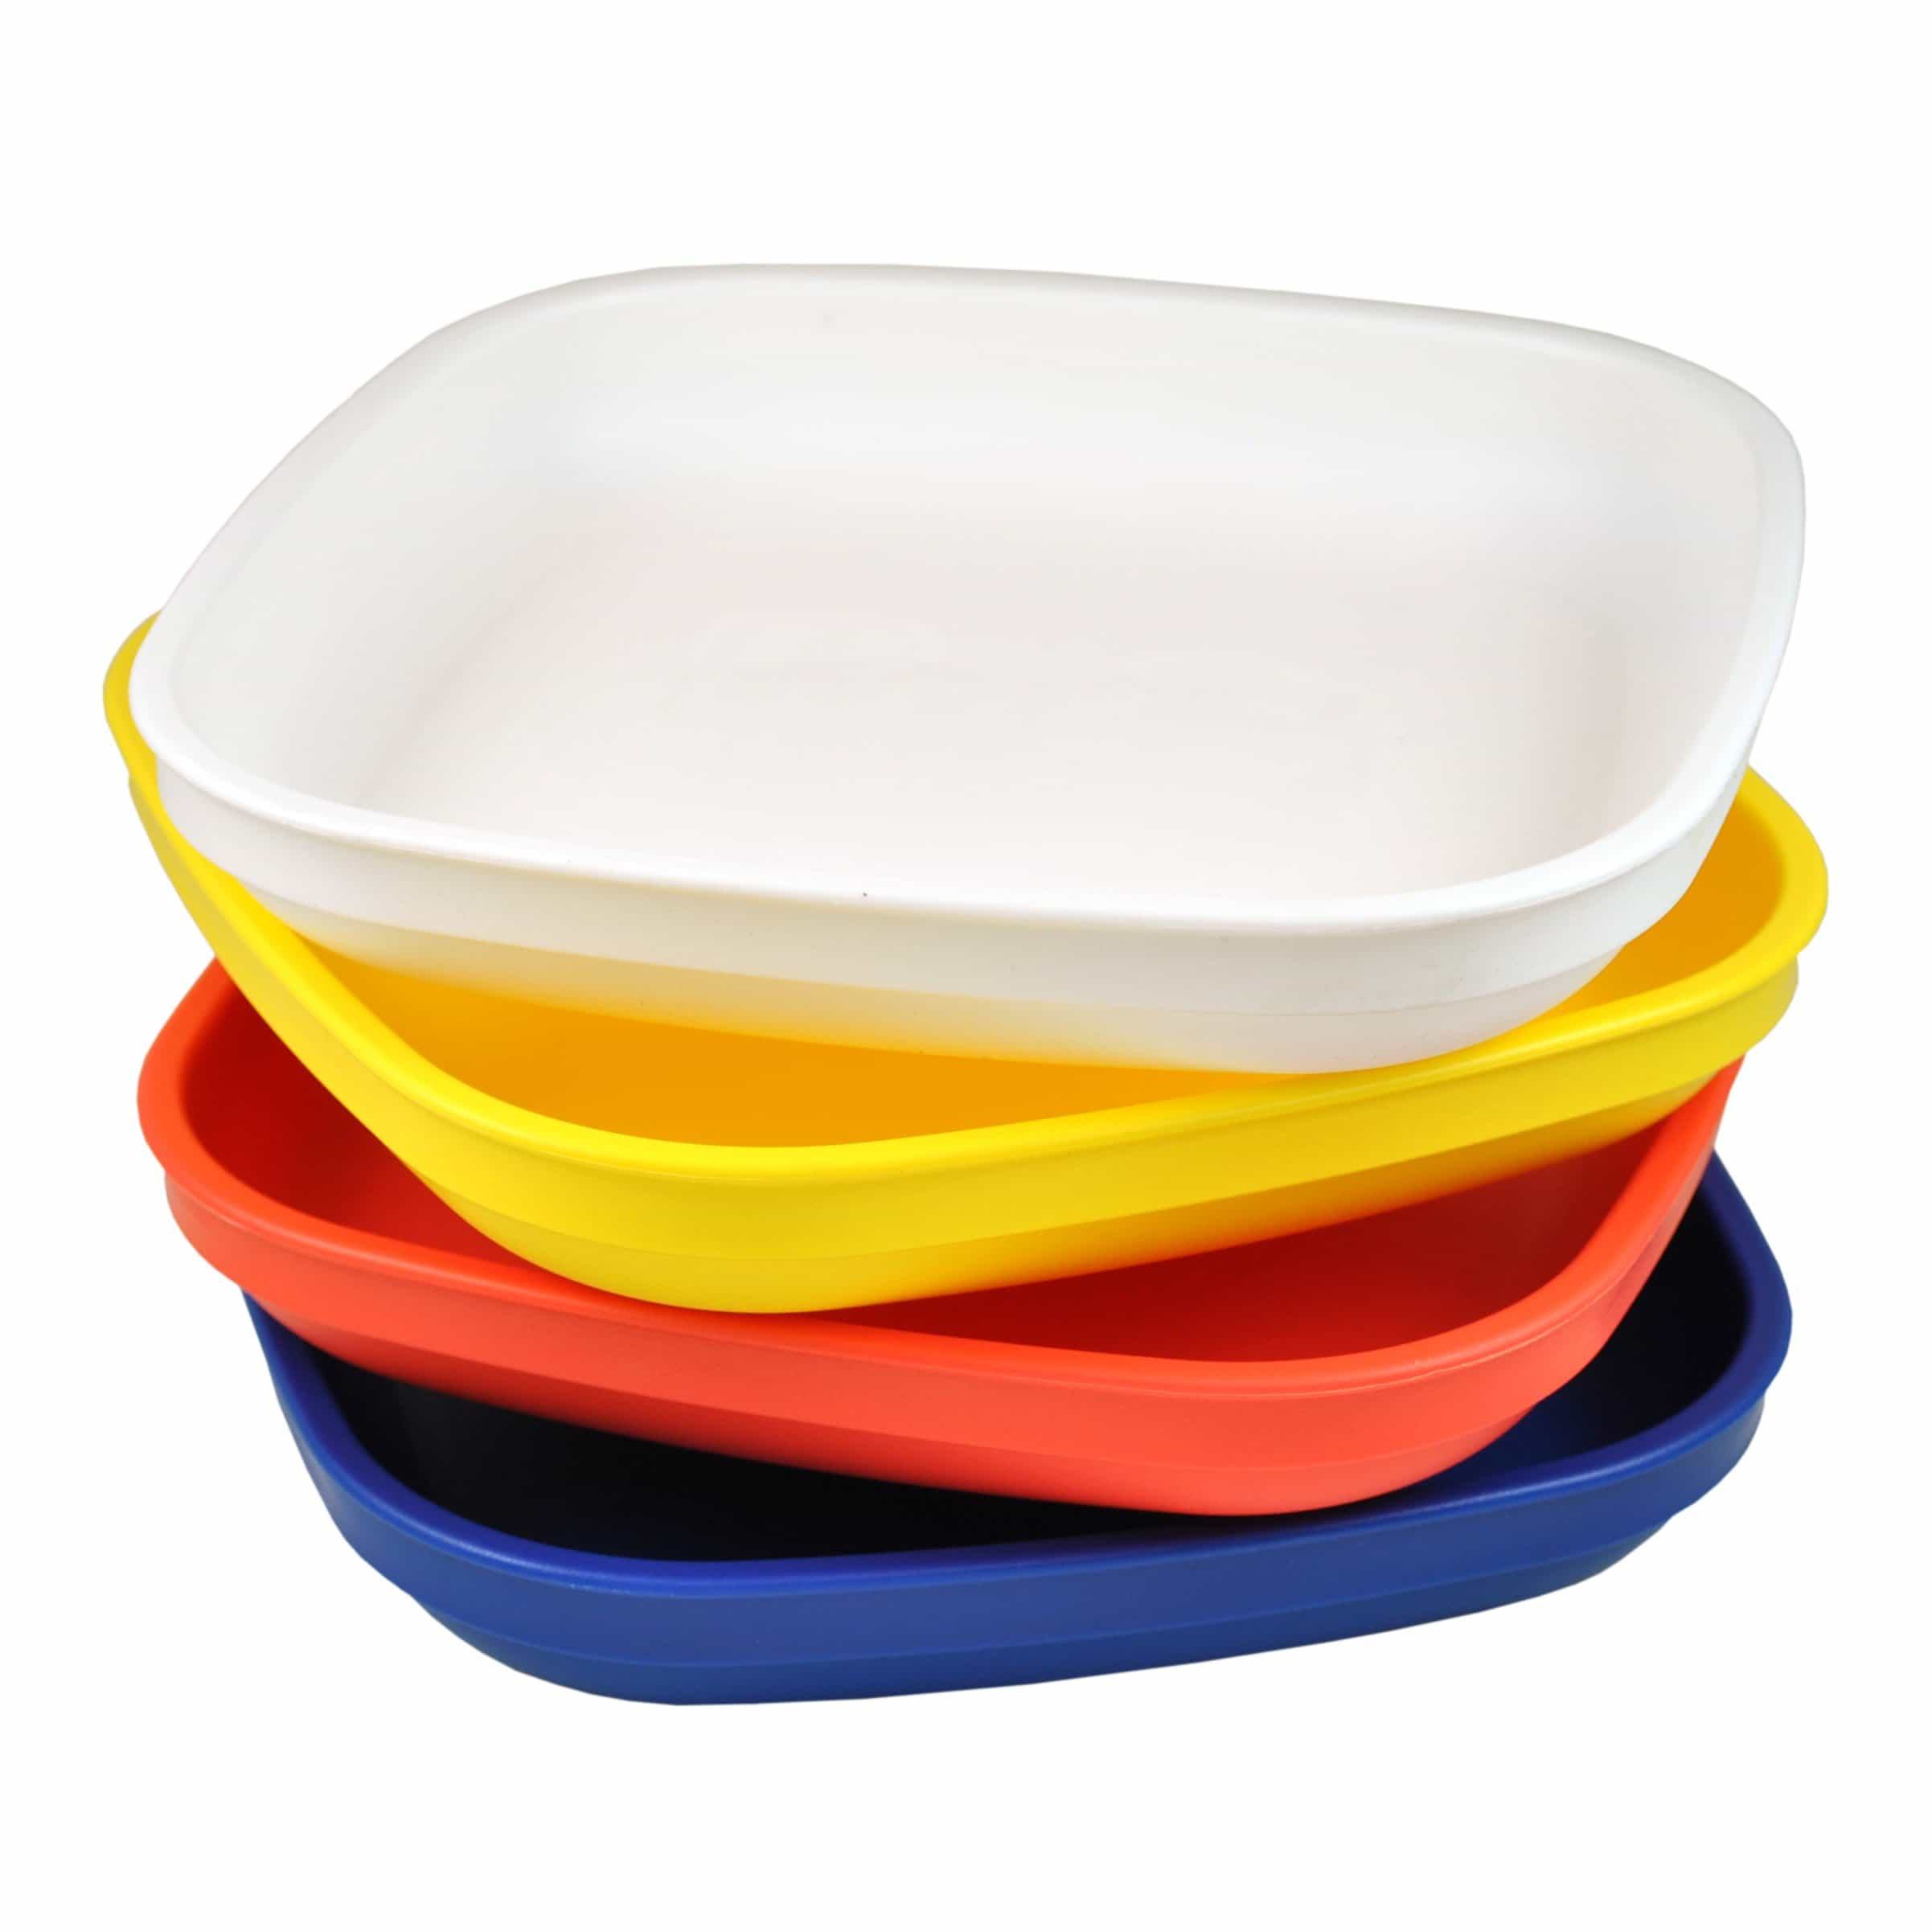 Re-play Flat Plates - Ecotree Baby Boutique